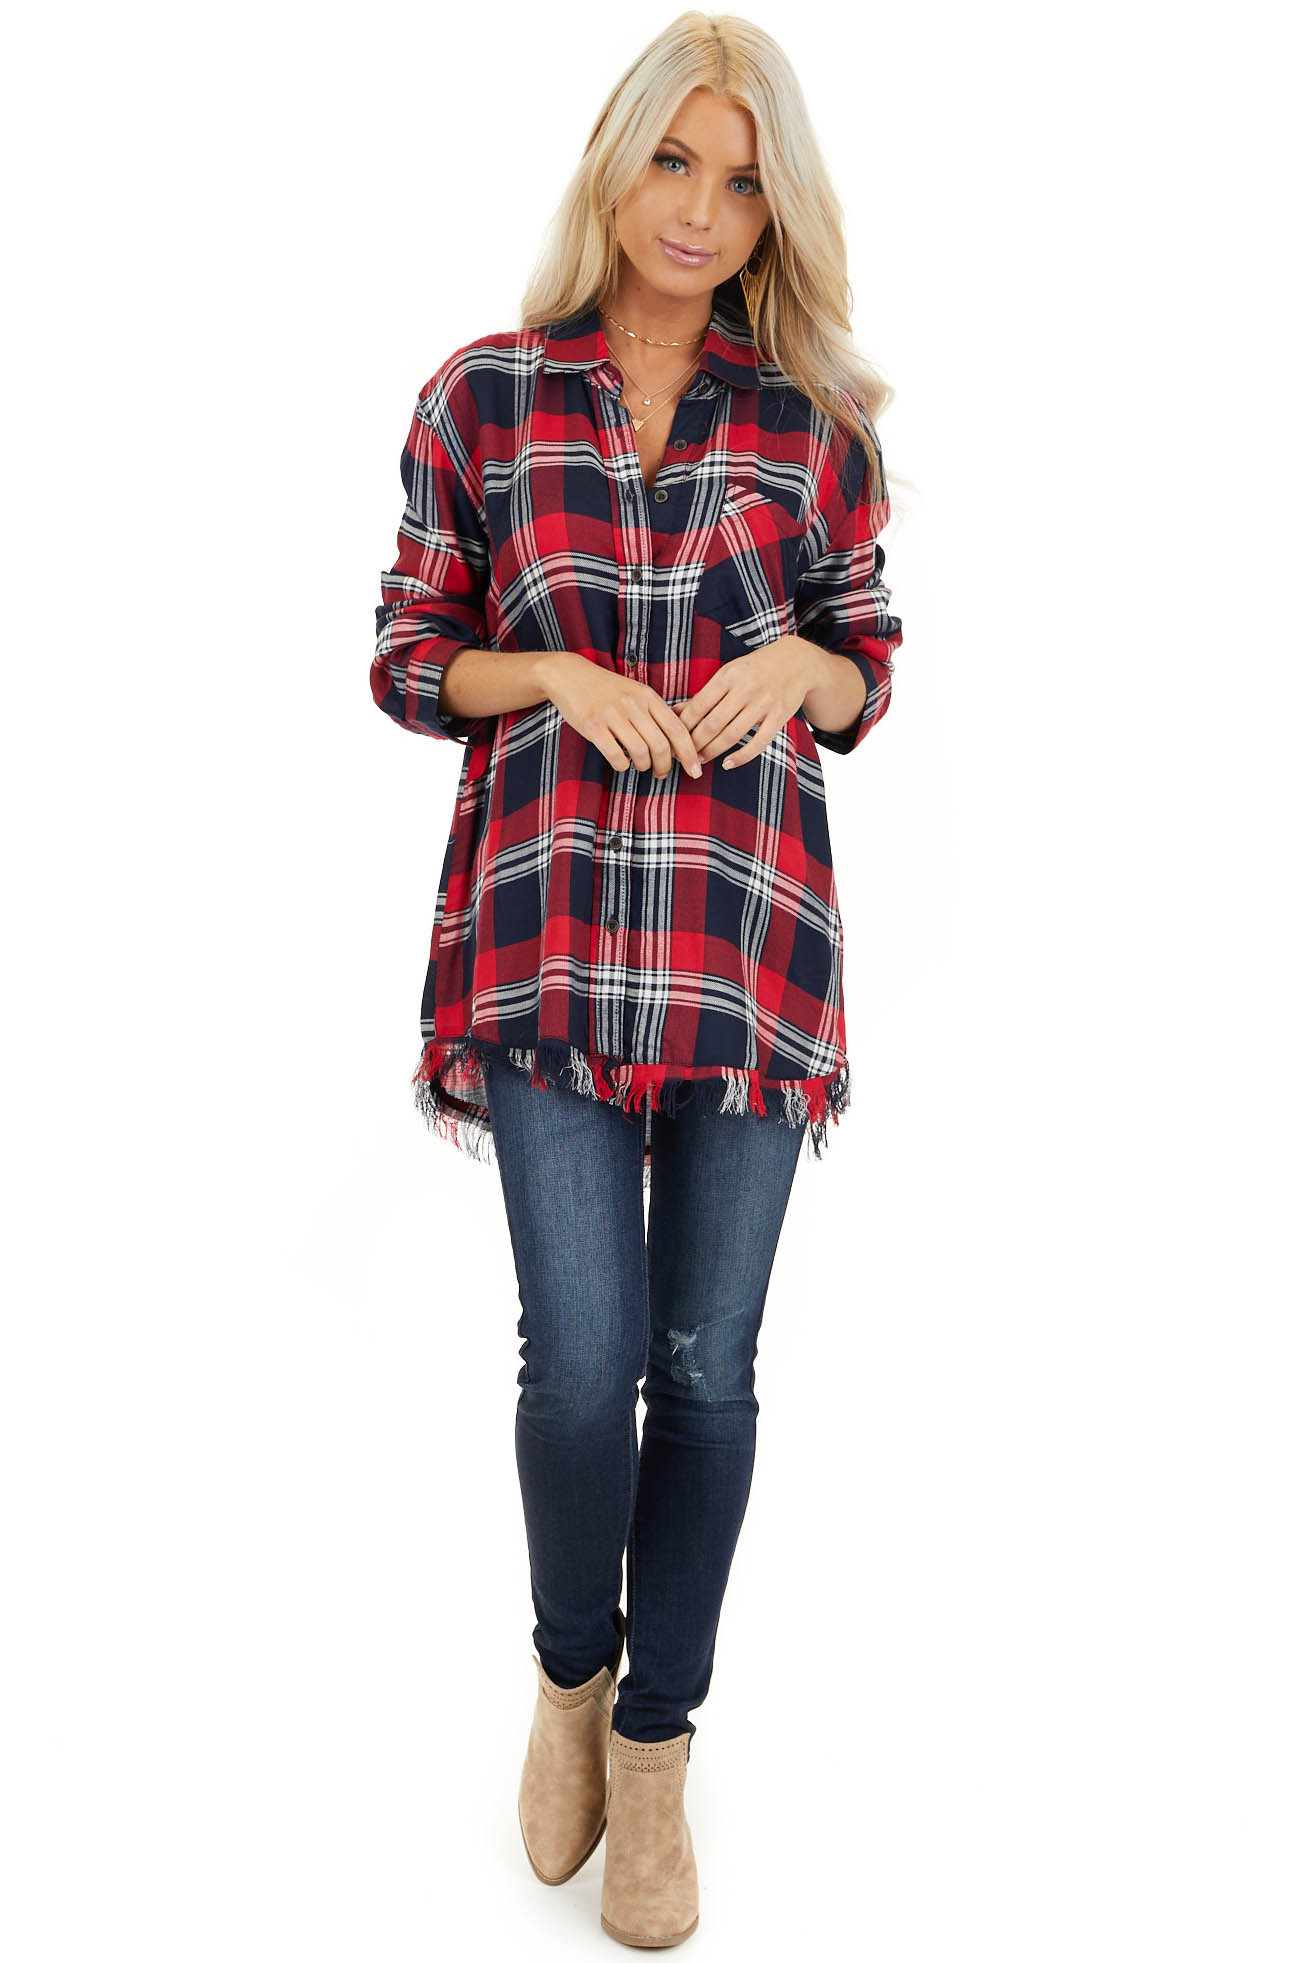 Lipstick Red and Navy Plaid Button Up Top with Long Sleeves front full body